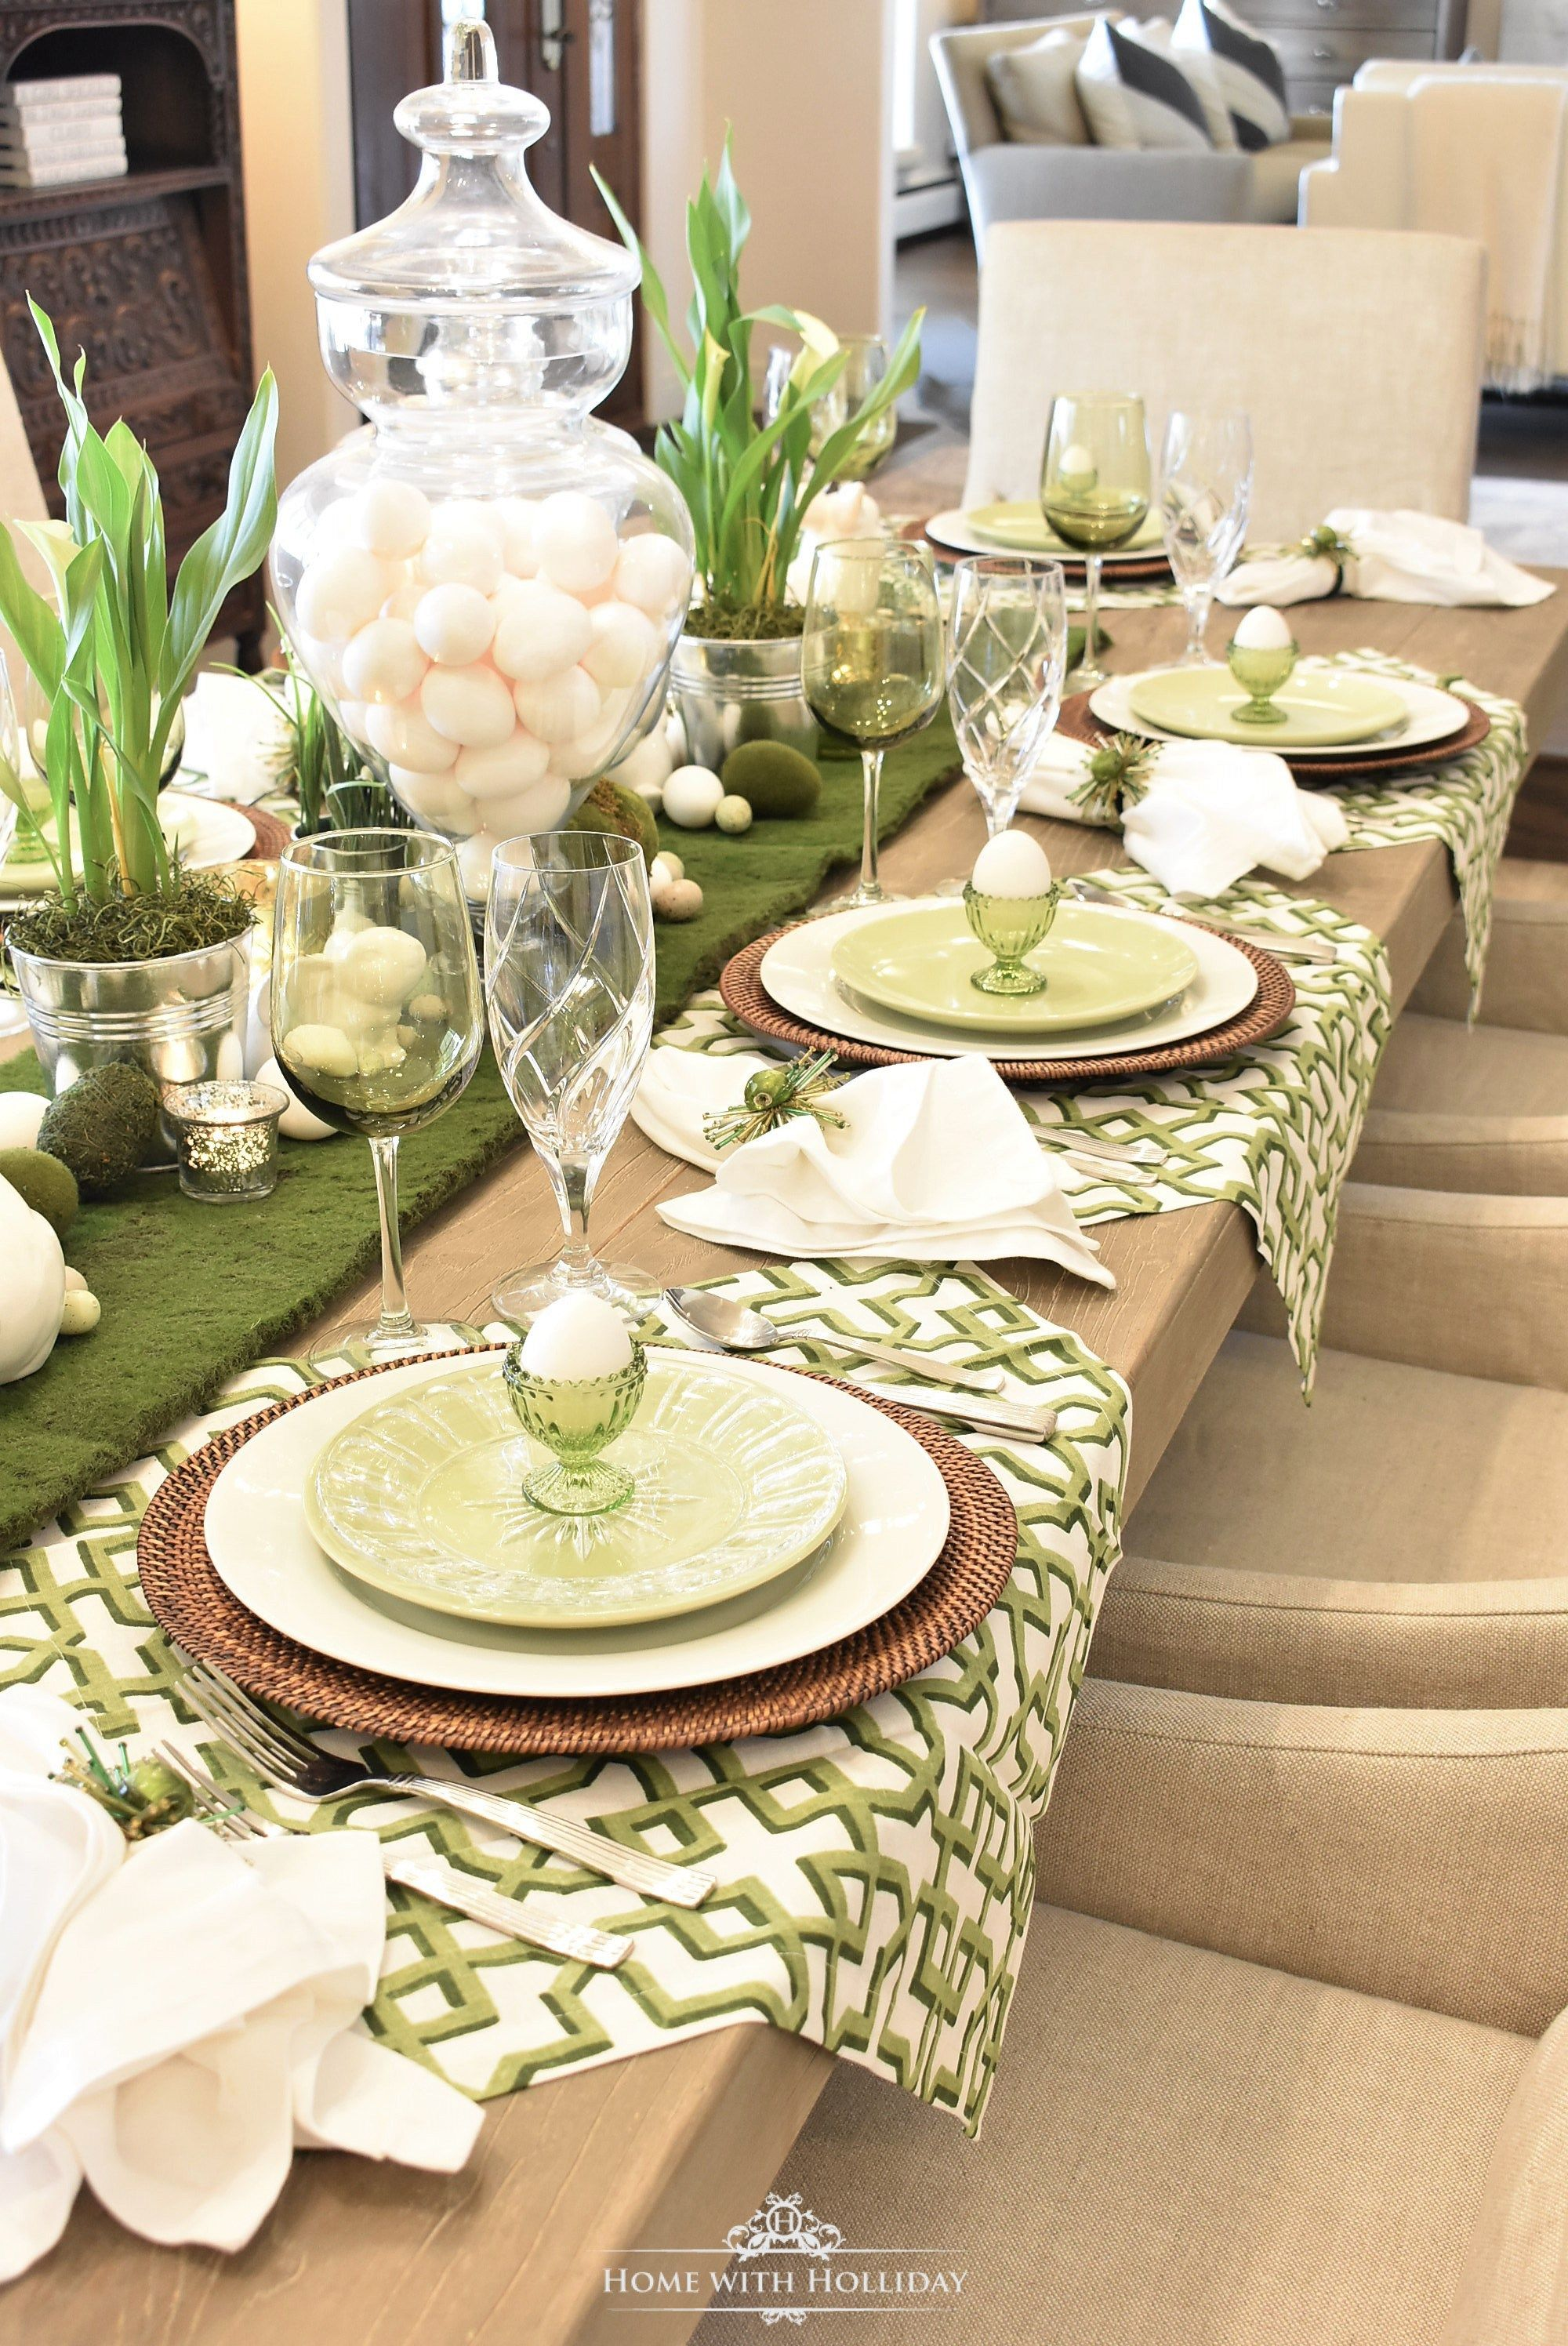 Green And White Easter Table Setting Home With Holliday Table Setting Decor Easter Table Settings Easter Table Decorations